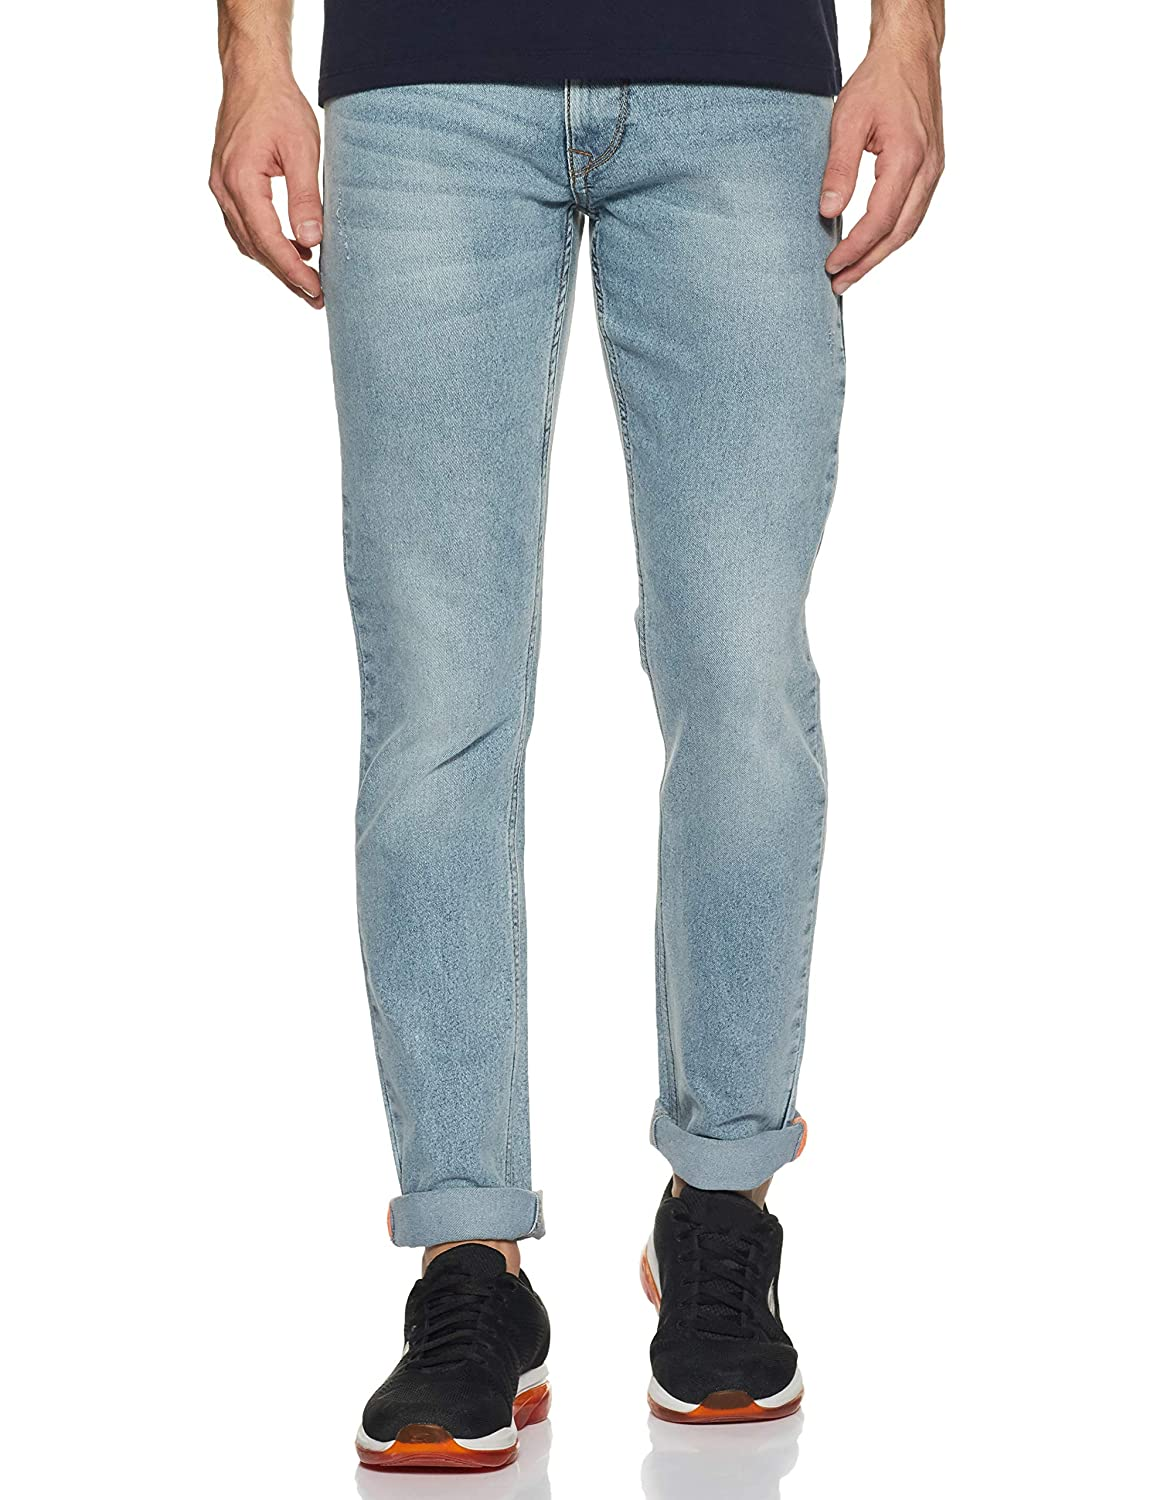 For 726/-(70% Off) John Players Jeans Minimum 70% off at Amazon India